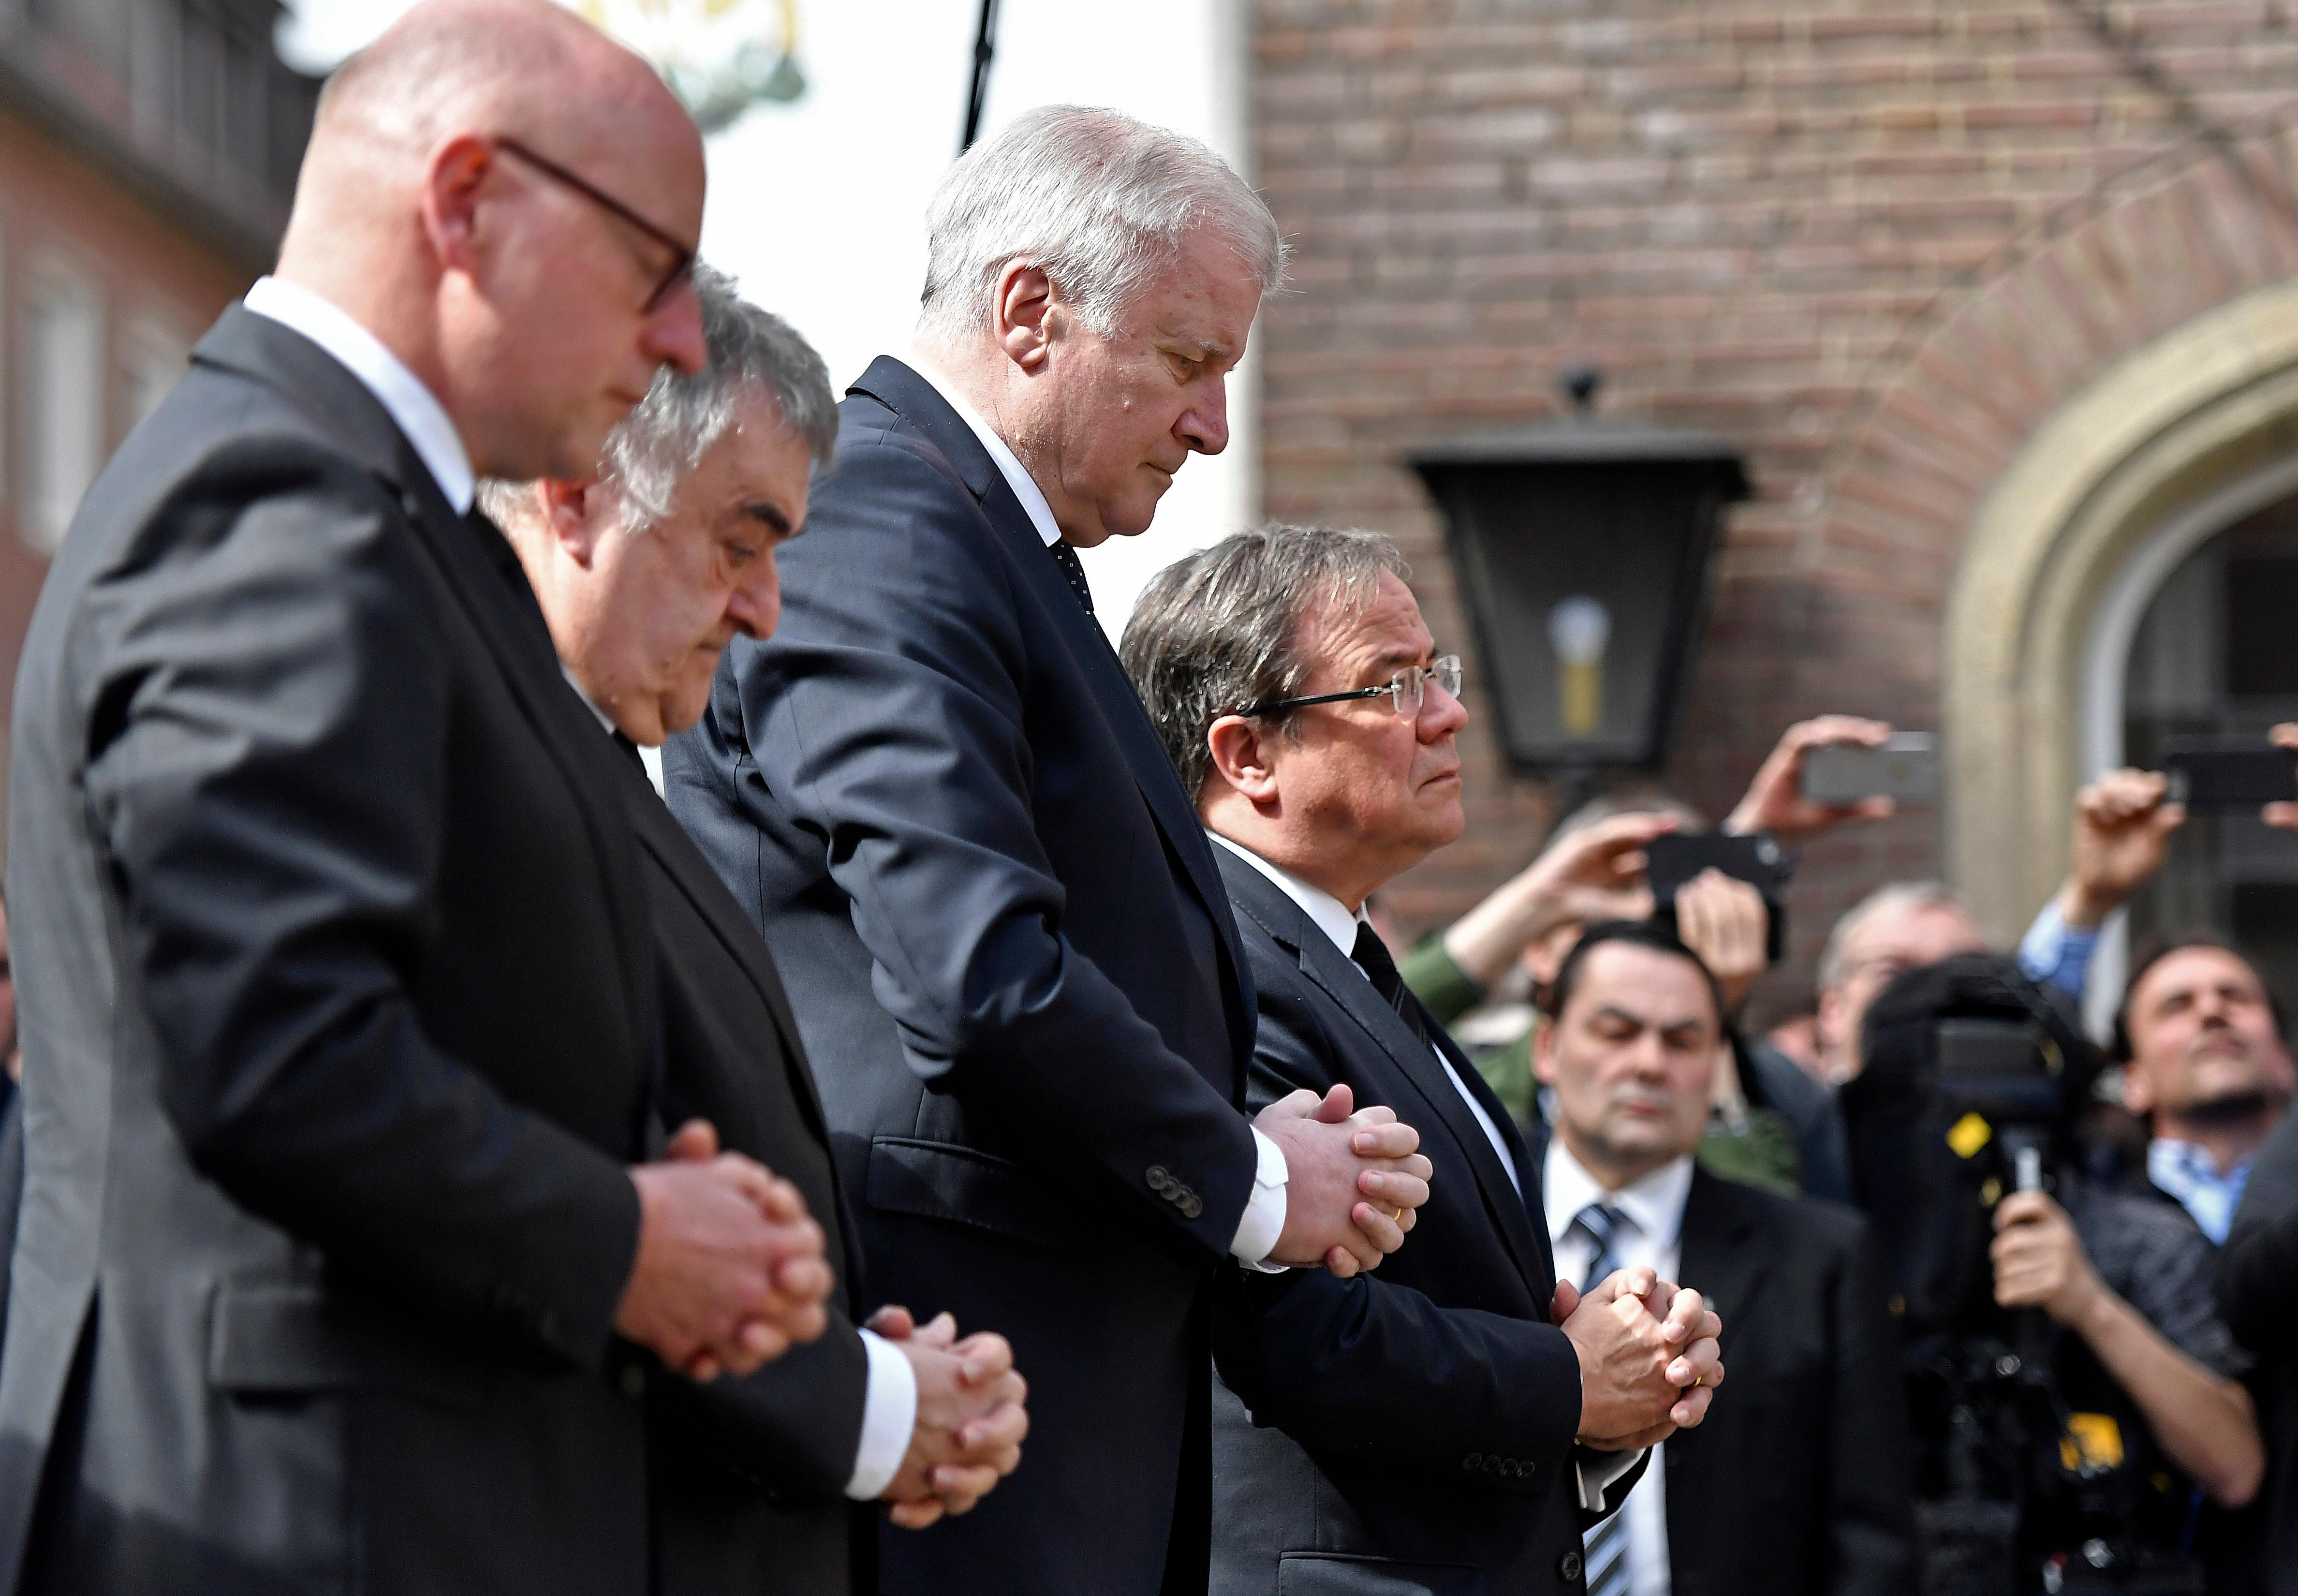 German interior minister Horst Seehofer, center, prays with interior minister of North Rhine-Westphalia Herbert Reul,  second  left, governor Armin Laschet, right,  and the mayor of Muenster Markus Lewe, left, at the place in Muenster, Germany, Sunday, April 8, 2018 where a vehicle crashed into a crowd yesterday. A van crashed into people drinking outside a popular bar Saturday in the German city of Muenster, killing two people and injuring 20 others before the driver of the vehicle shot and killed himself inside it, police said. (AP Photo/Martin Meissner)